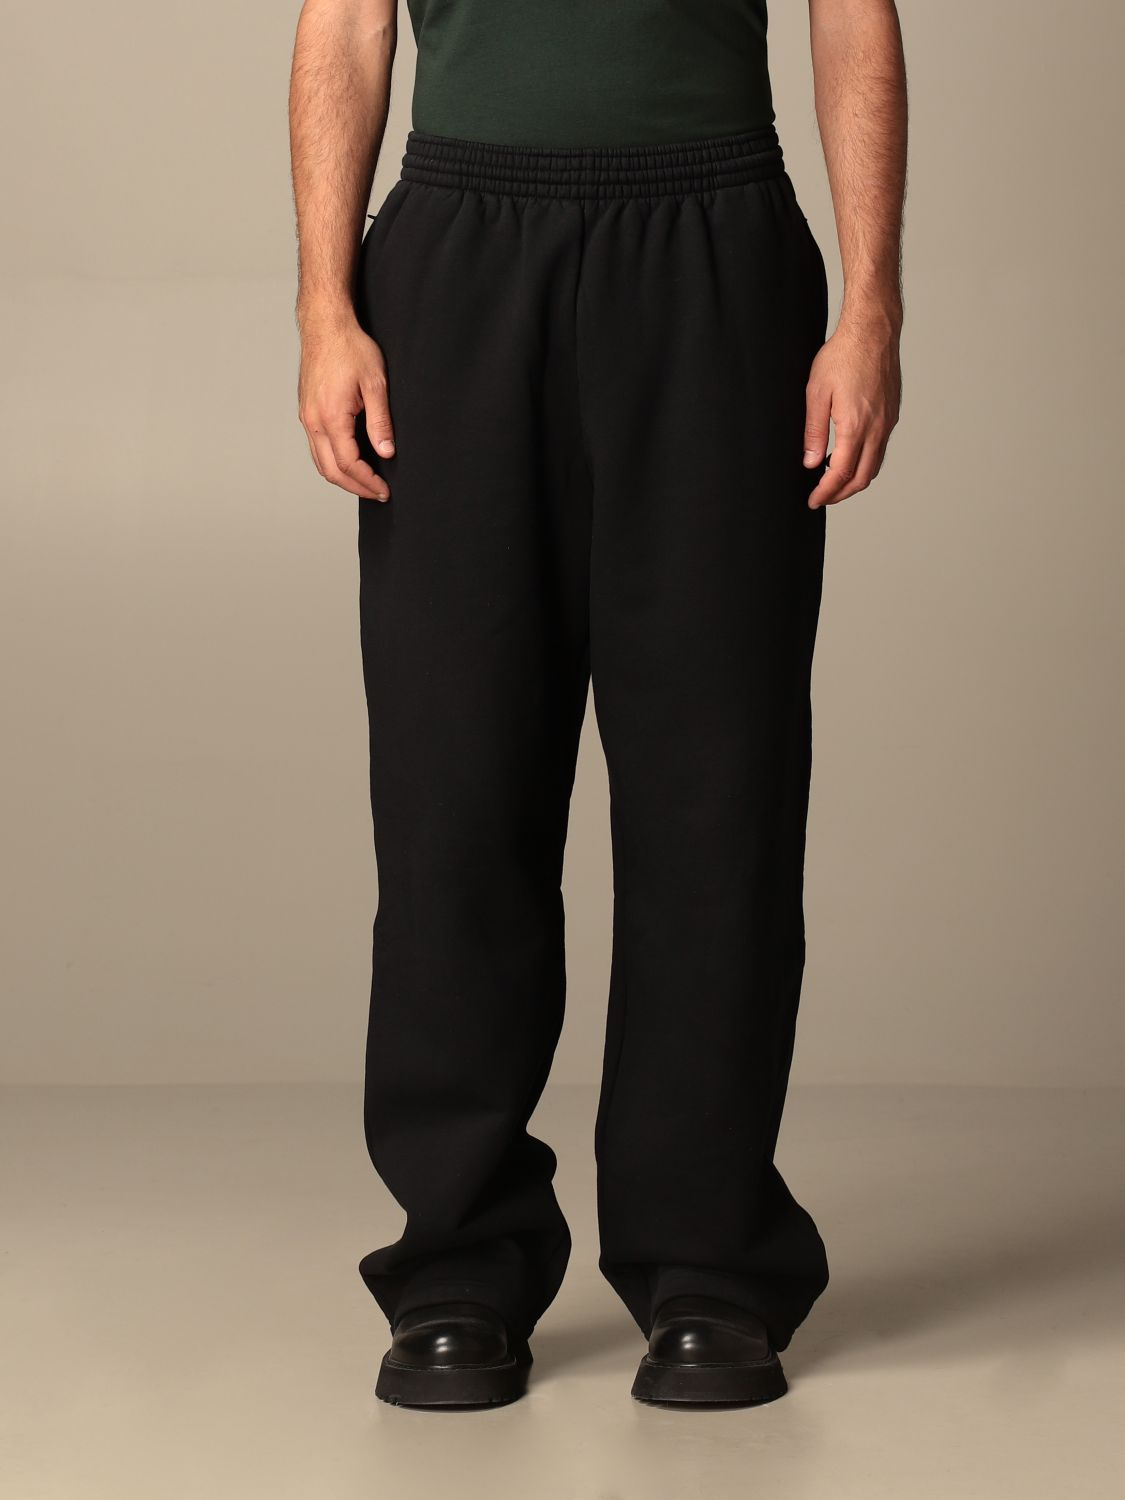 Trousers Balenciaga: Balenciaga cotton jogging pants black 1